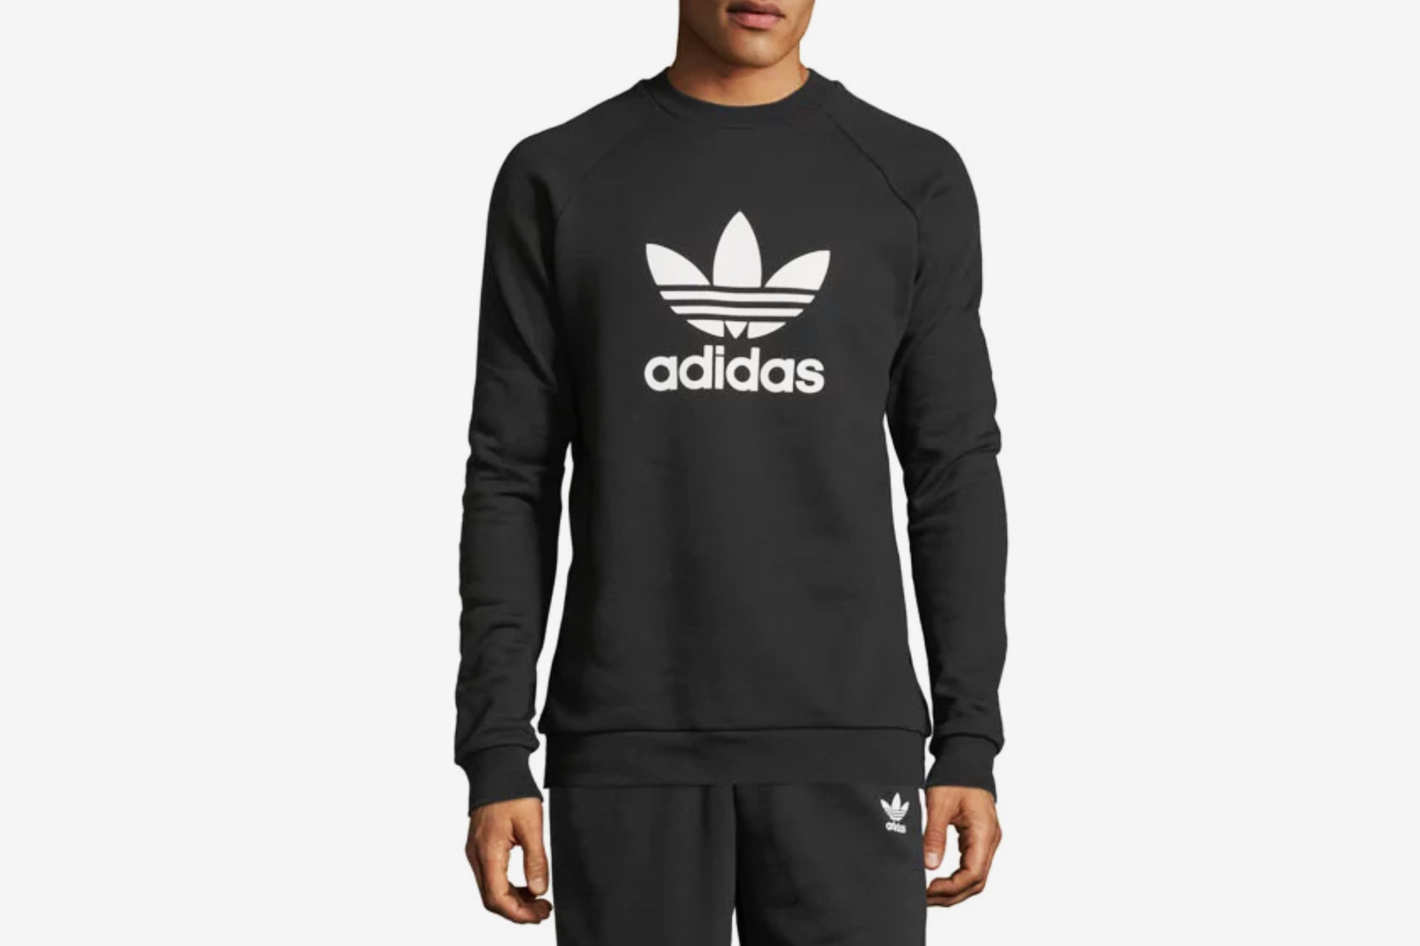 Adidas Men's Trefoil Warm-Up Sweatshirt